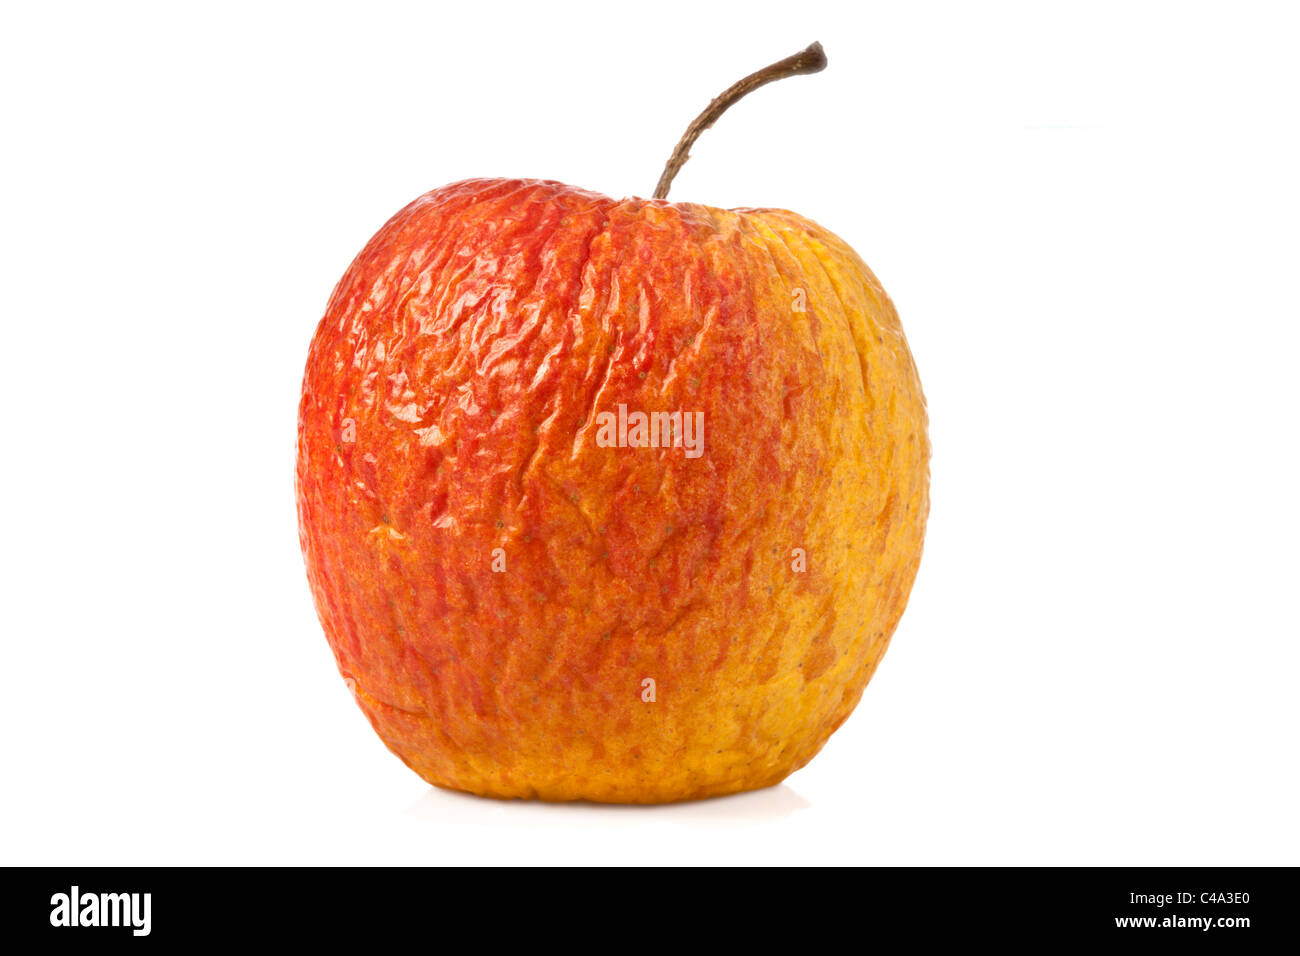 Dried Apple on white Background - Apfel, vertrocknet - Stock Image